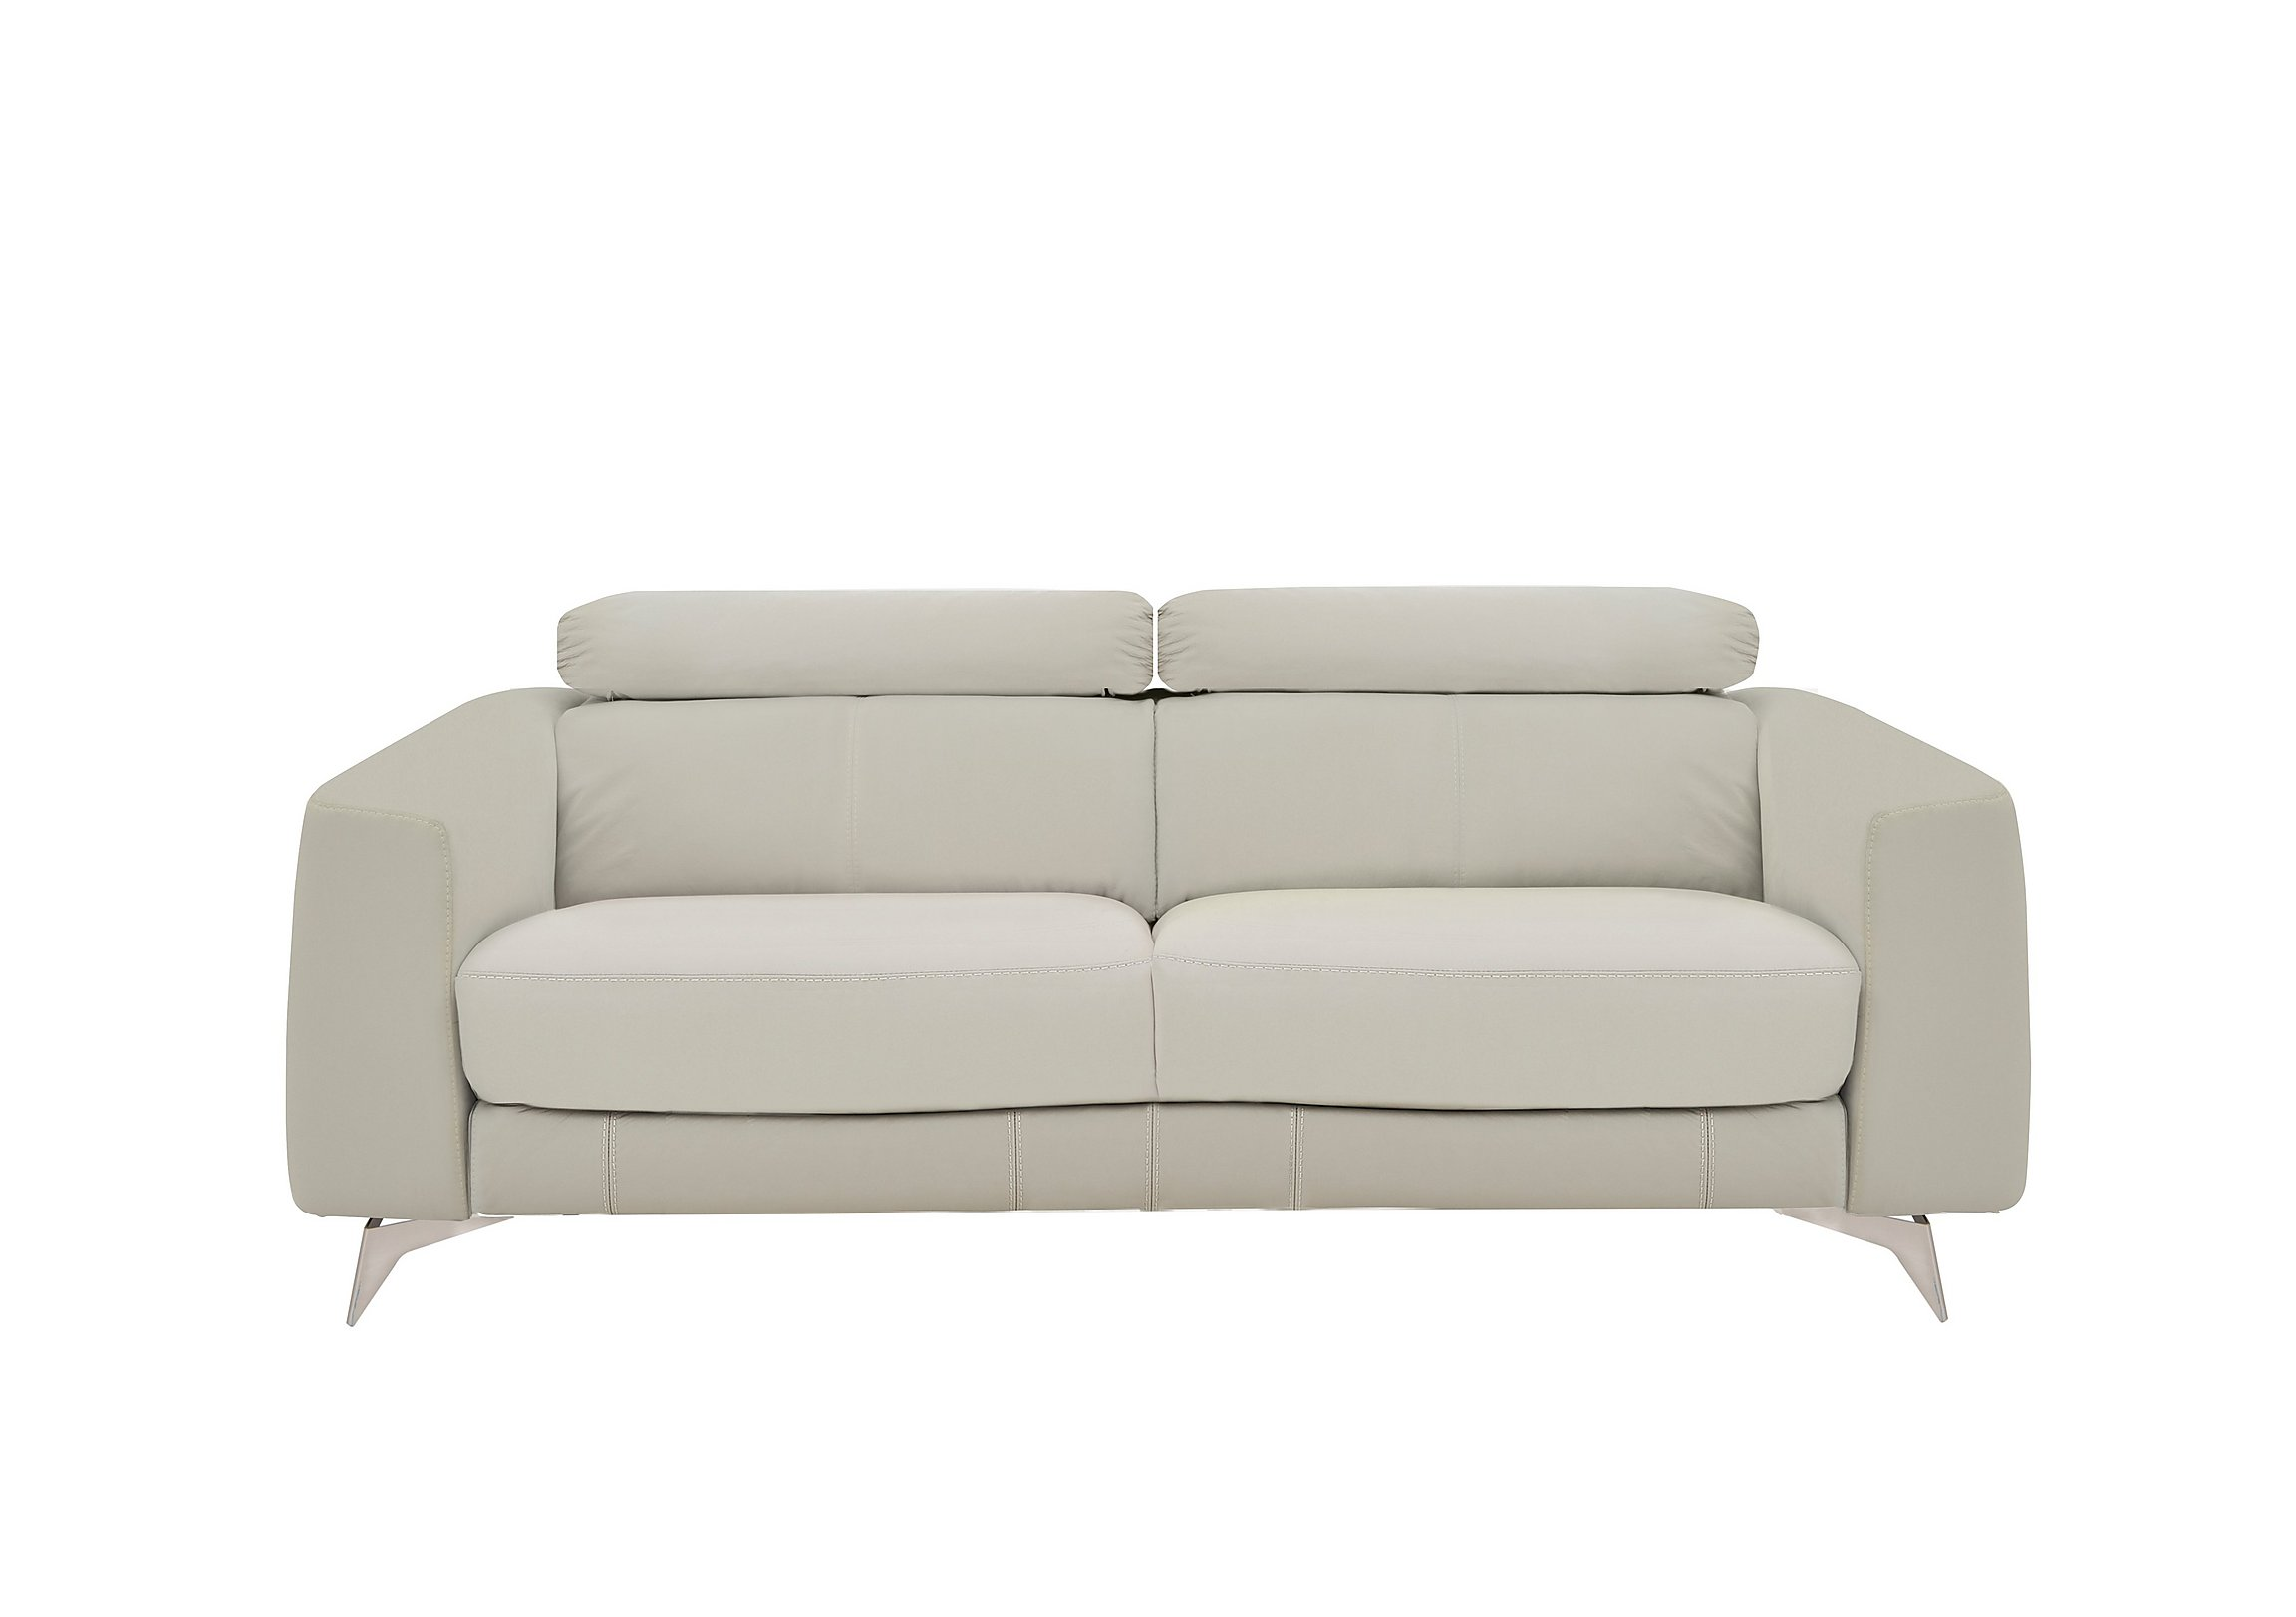 Flavio 3 seater leather sofa world of leather furniture village play parisarafo Image collections